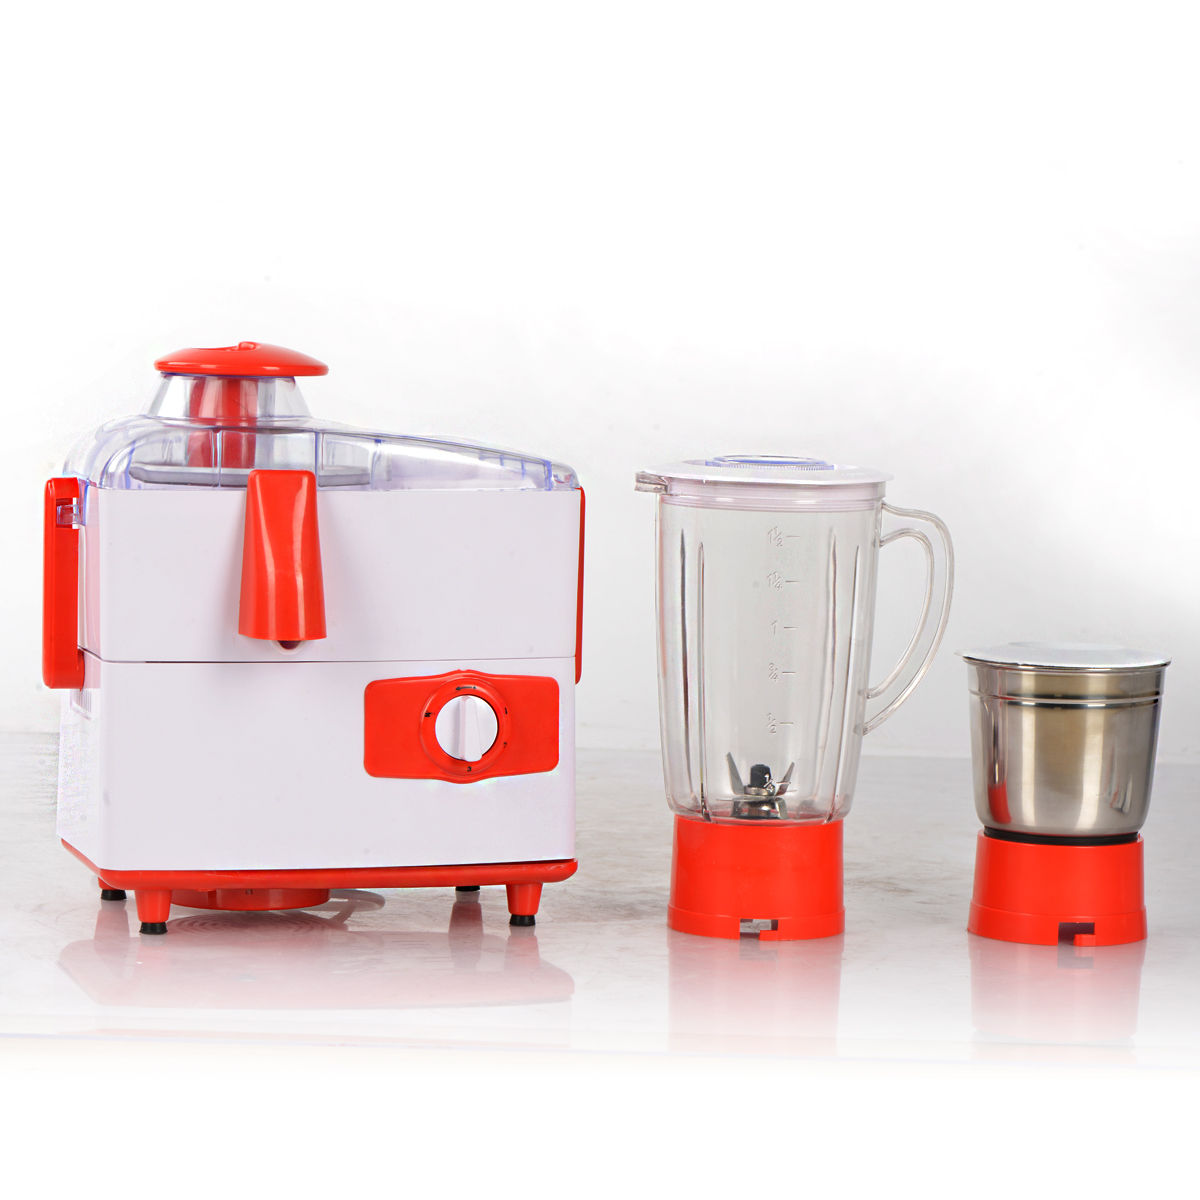 Royal Chef Slow Juicer Reviews : Buy Royal Chef Juicer Mixer Grinder Online at Best Price in India on Naaptol.com